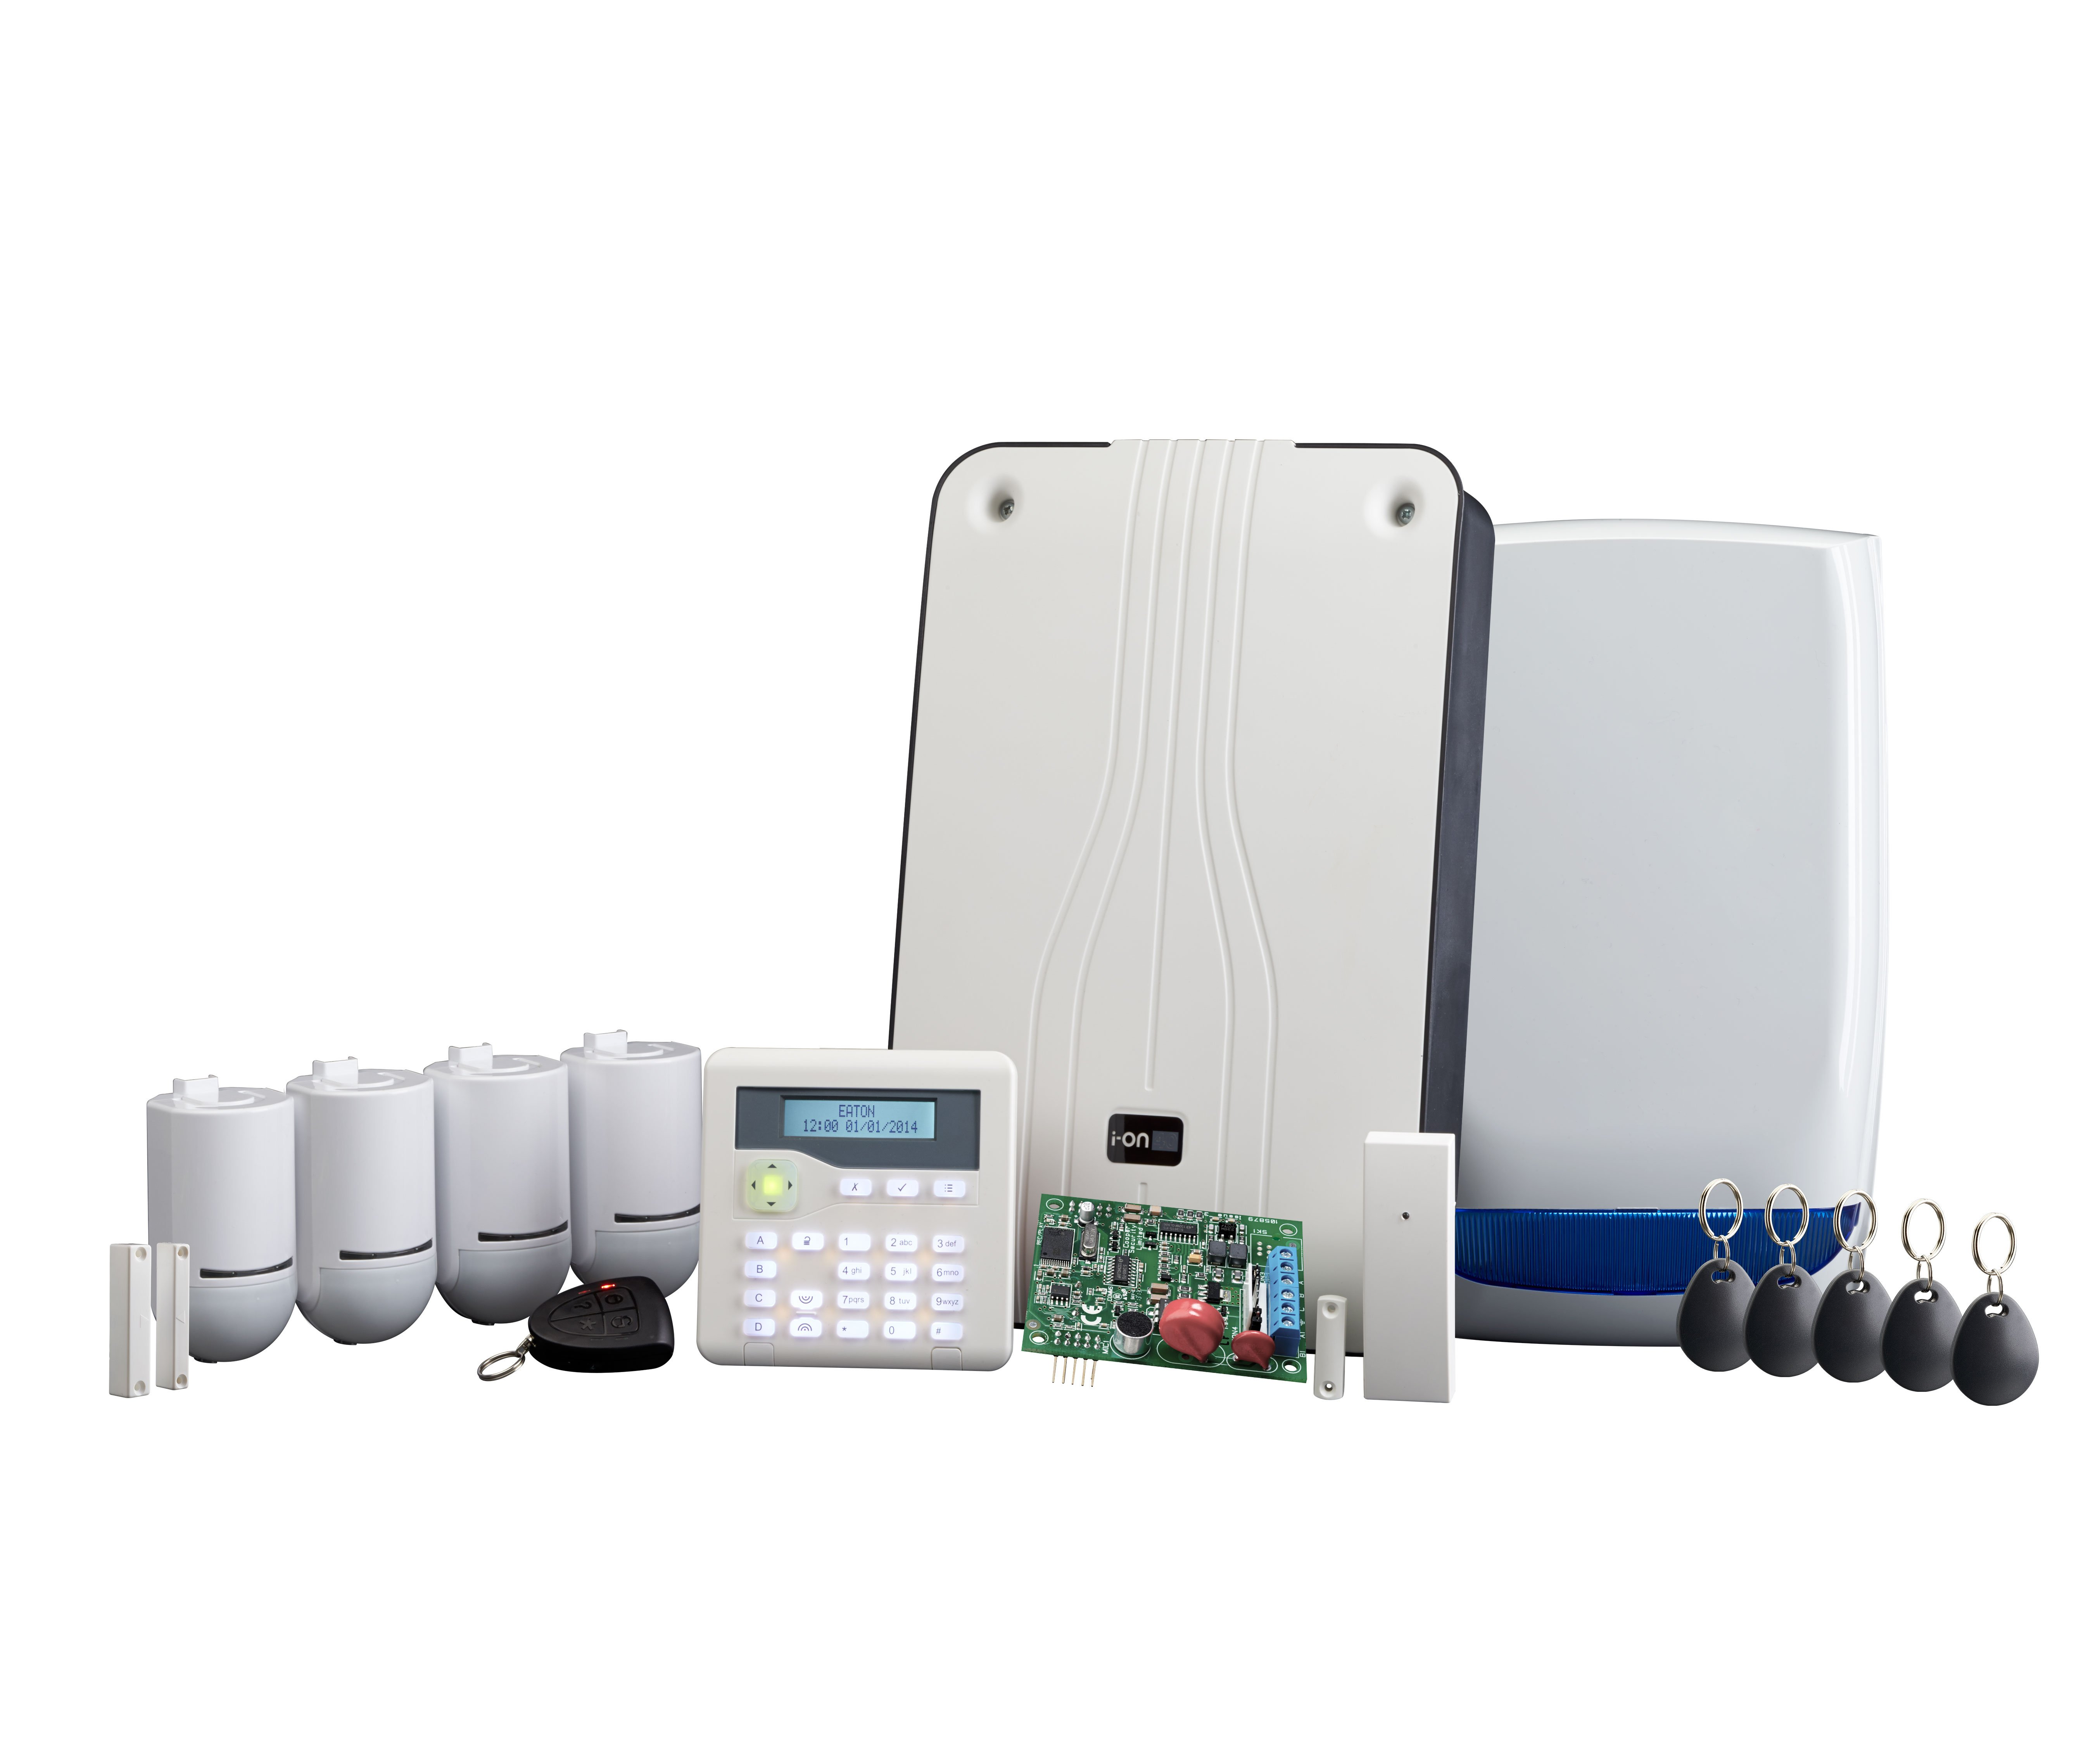 Eaton Offers the Perfect Package with its i-on16 kits